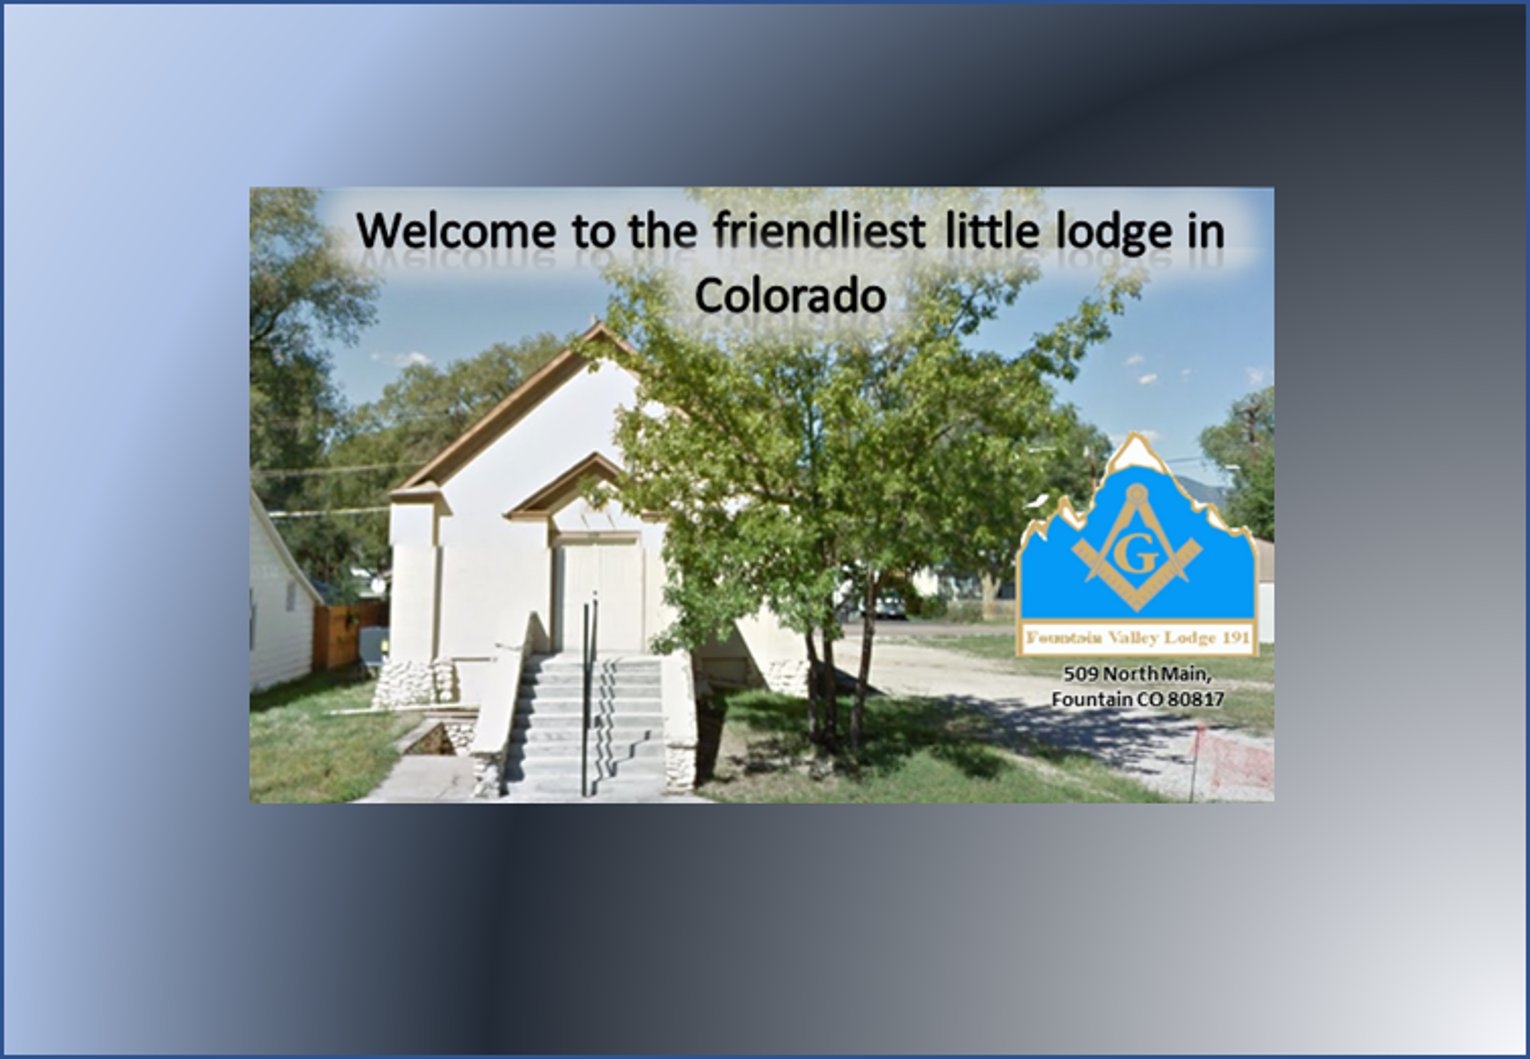 Fountain Valley Lodge #191